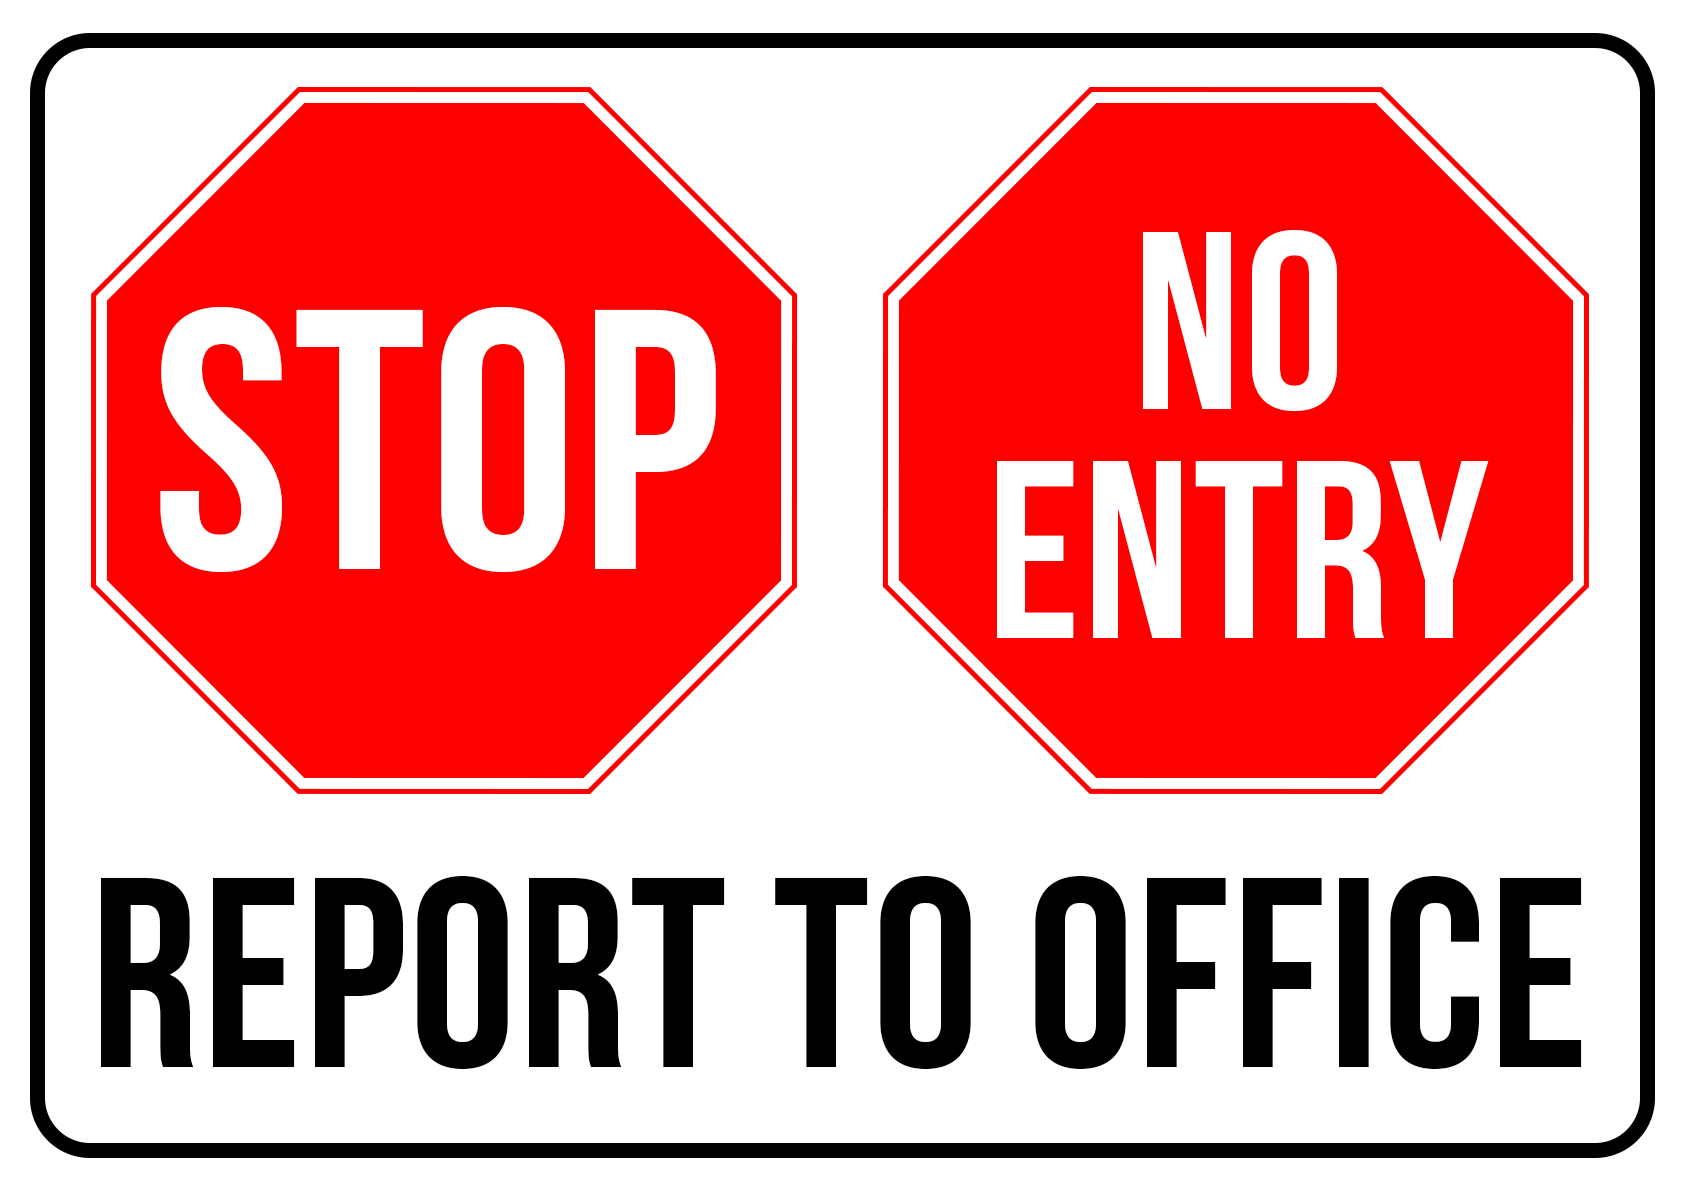 Stop Report to Office